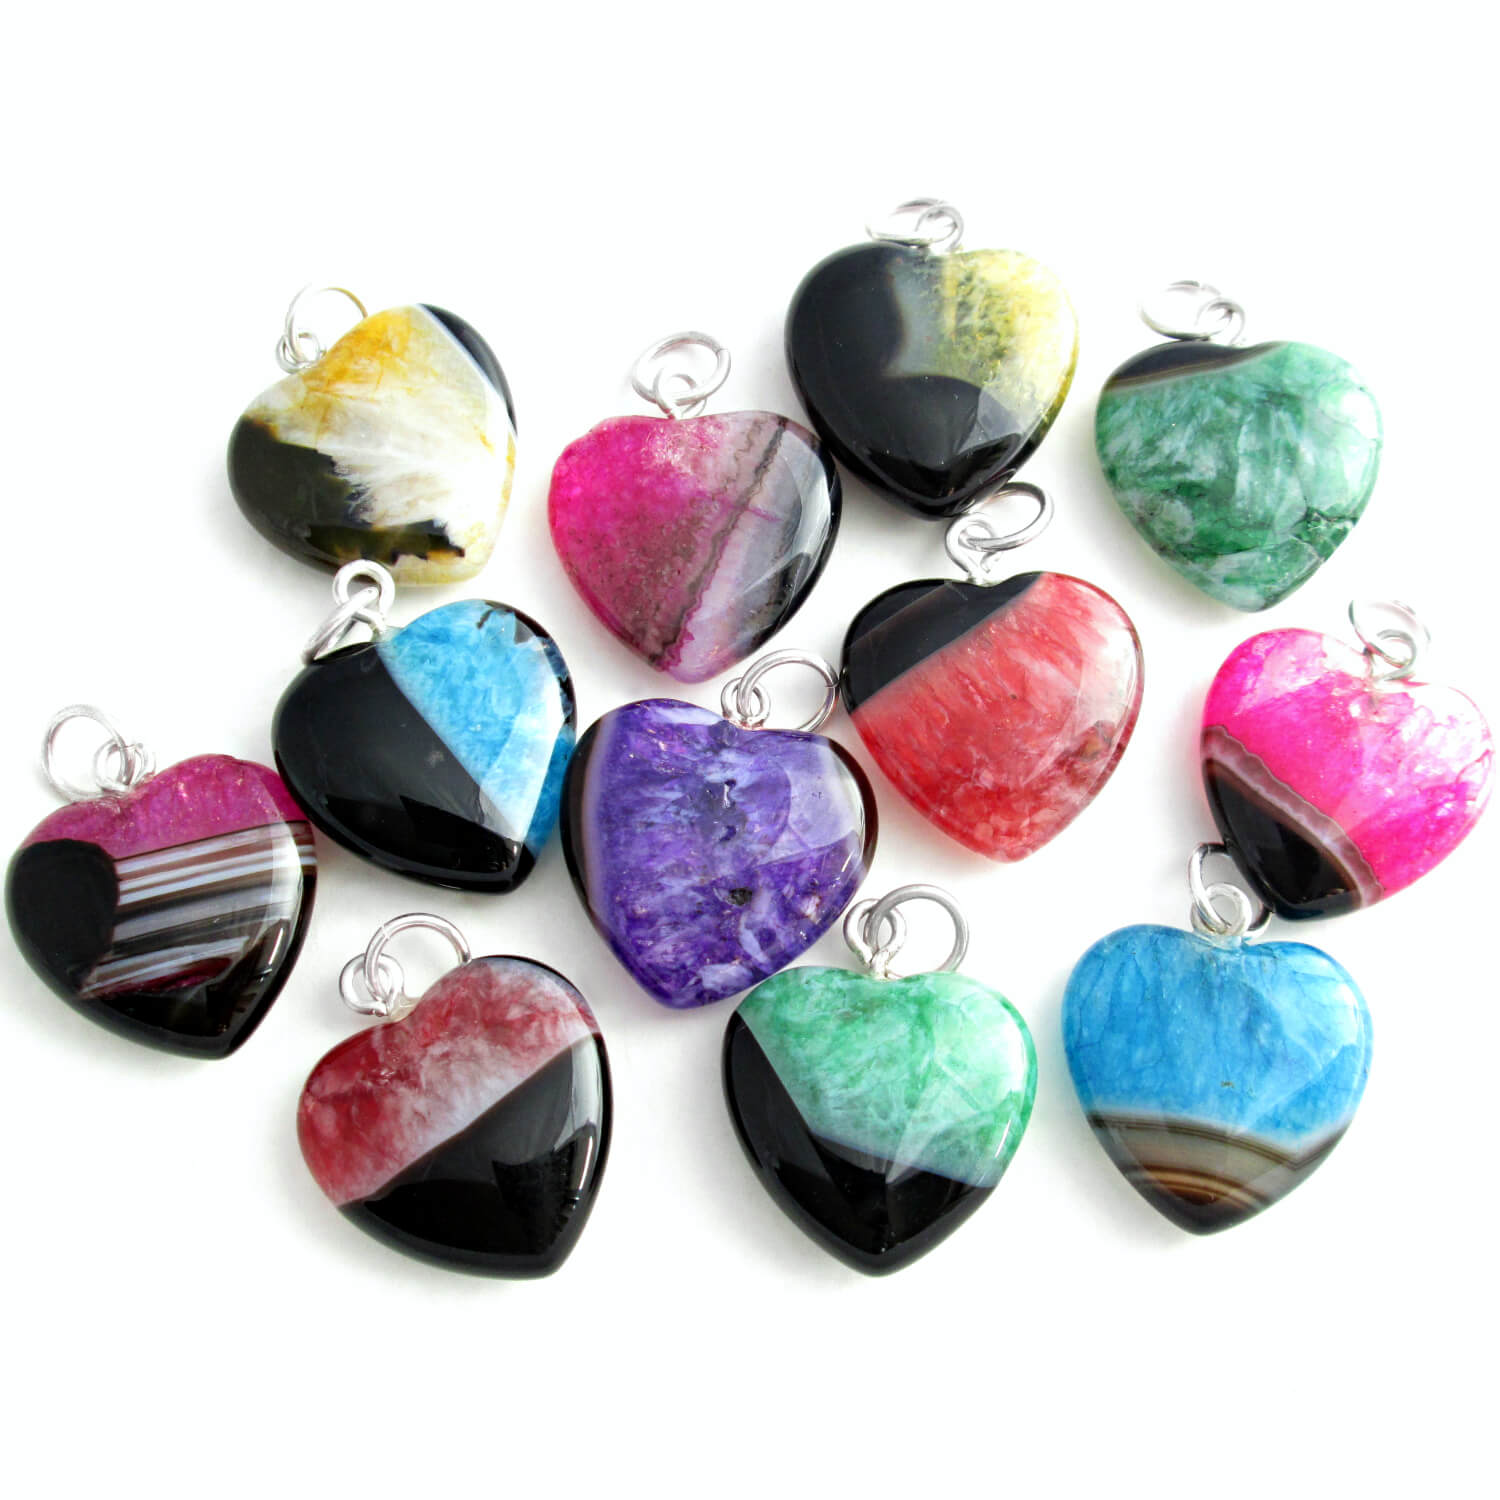 Agate & Quartz Heart Pendants